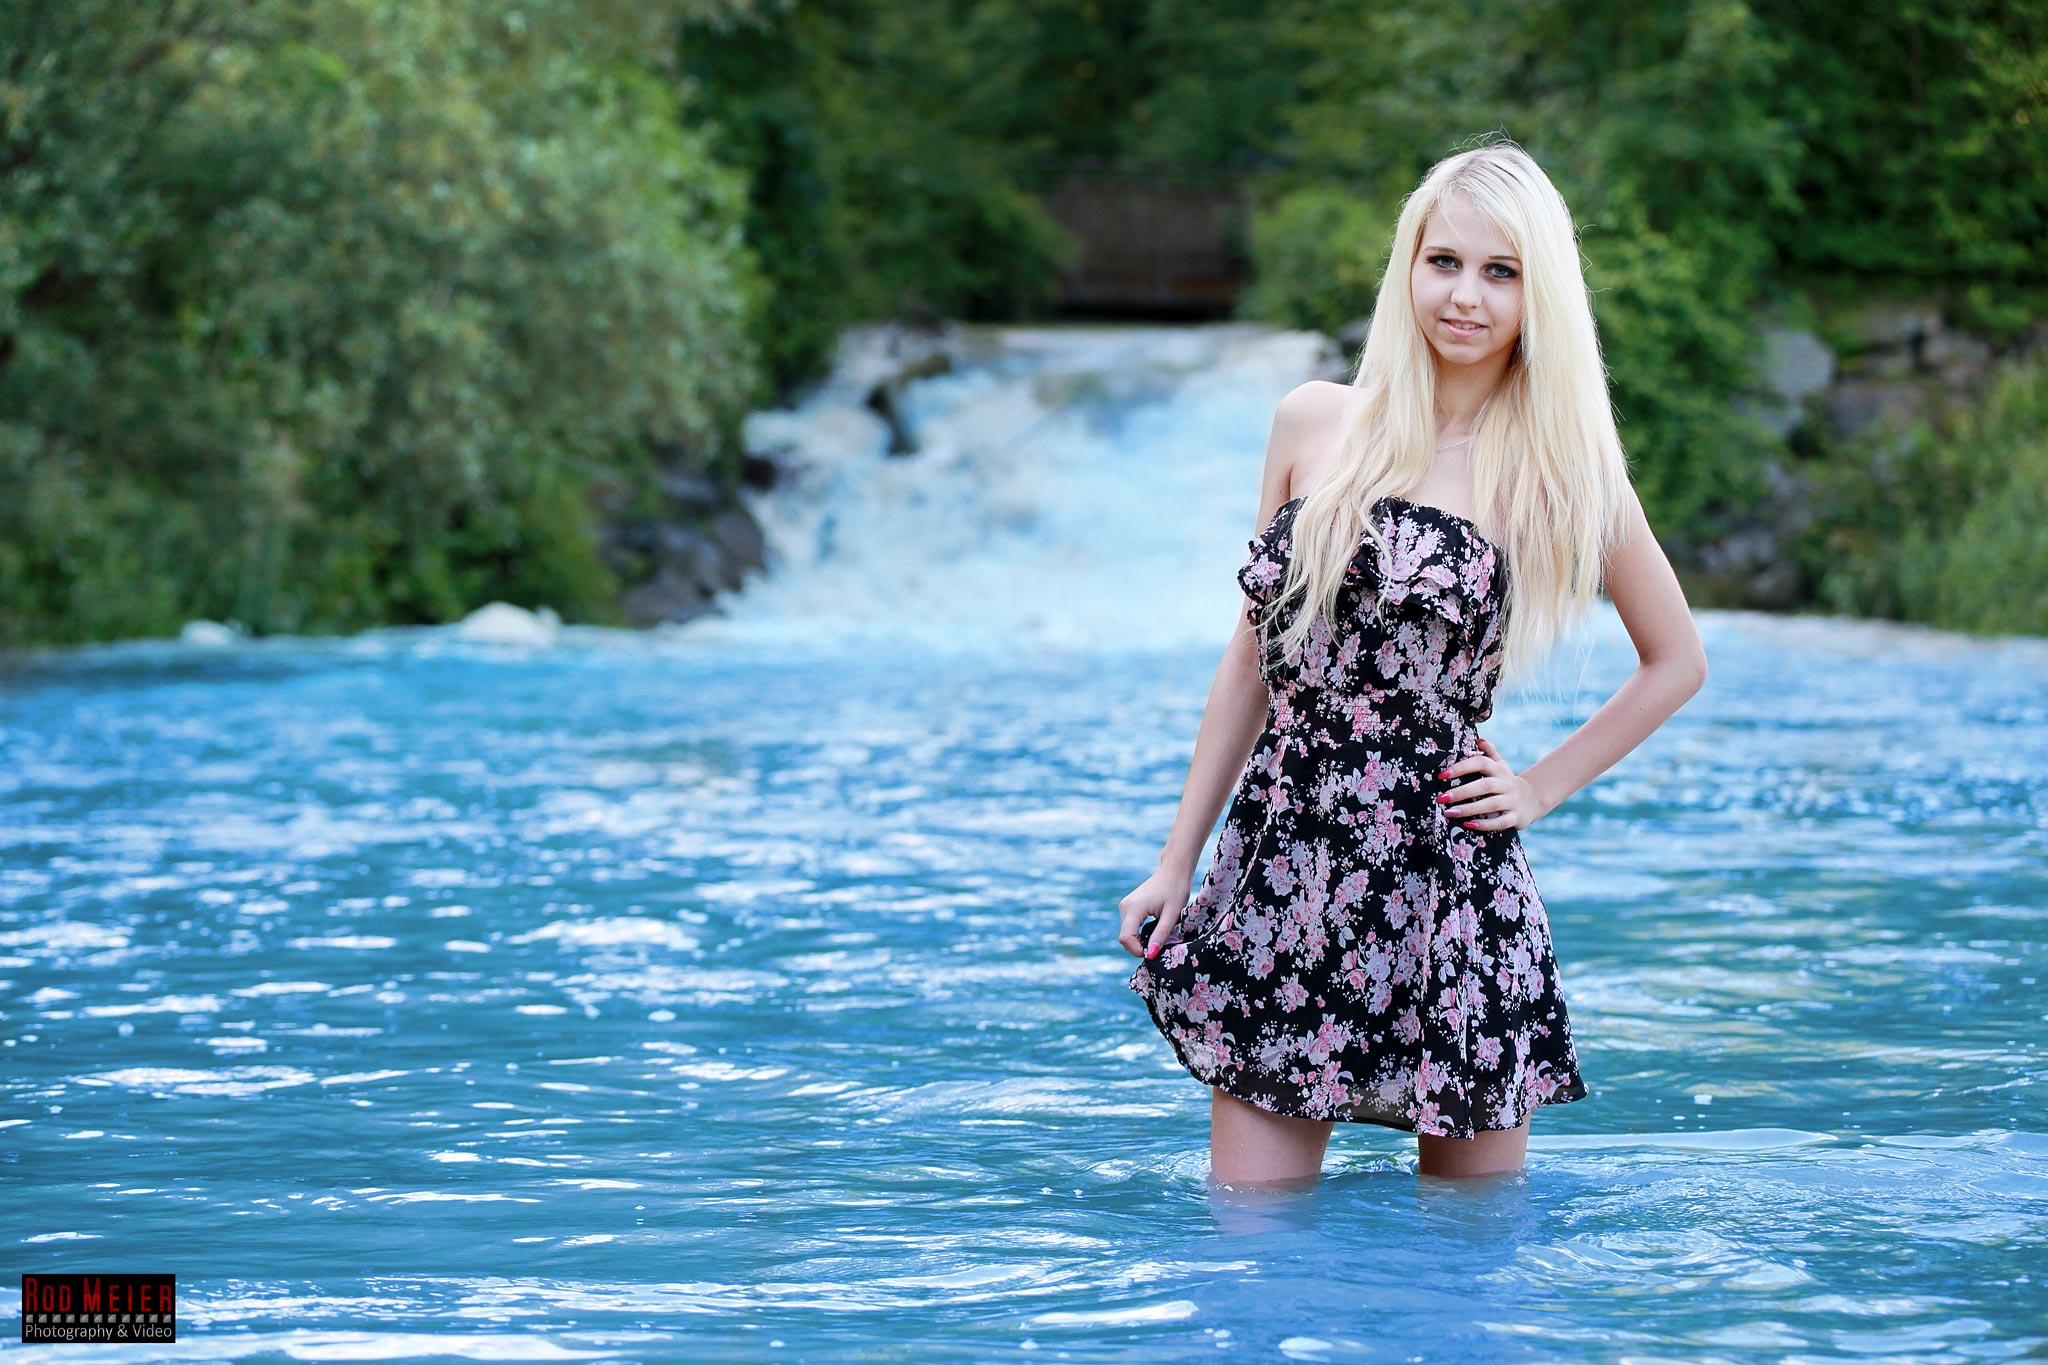 Blue Water - Outdoor Fotoshooting